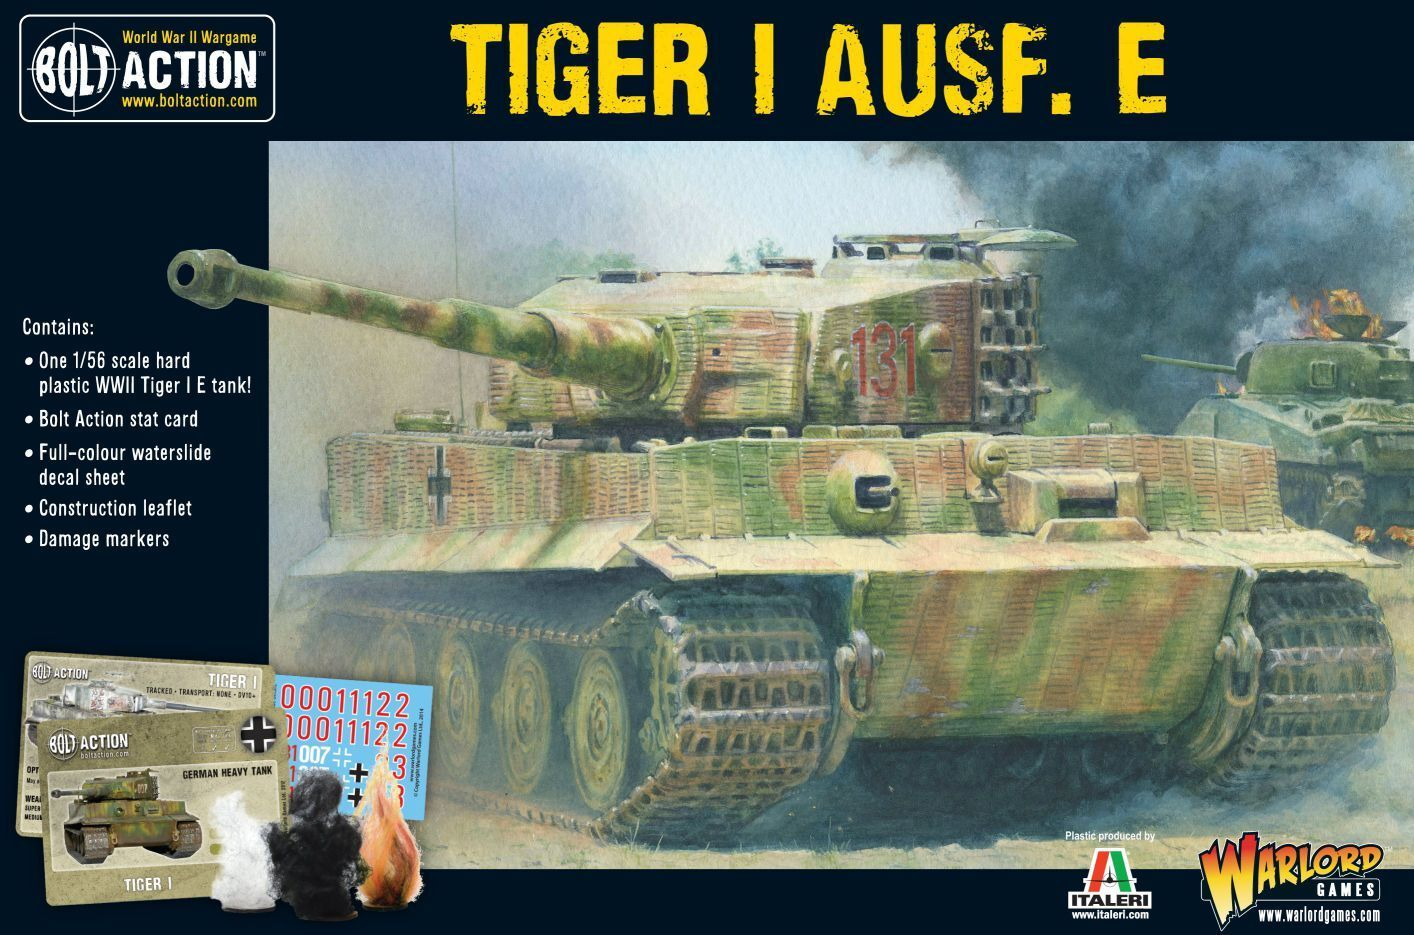 Warlord Games - Tiger I Ausf. E 1 3 32in - German WWII Panzer Tank 3 15 32in